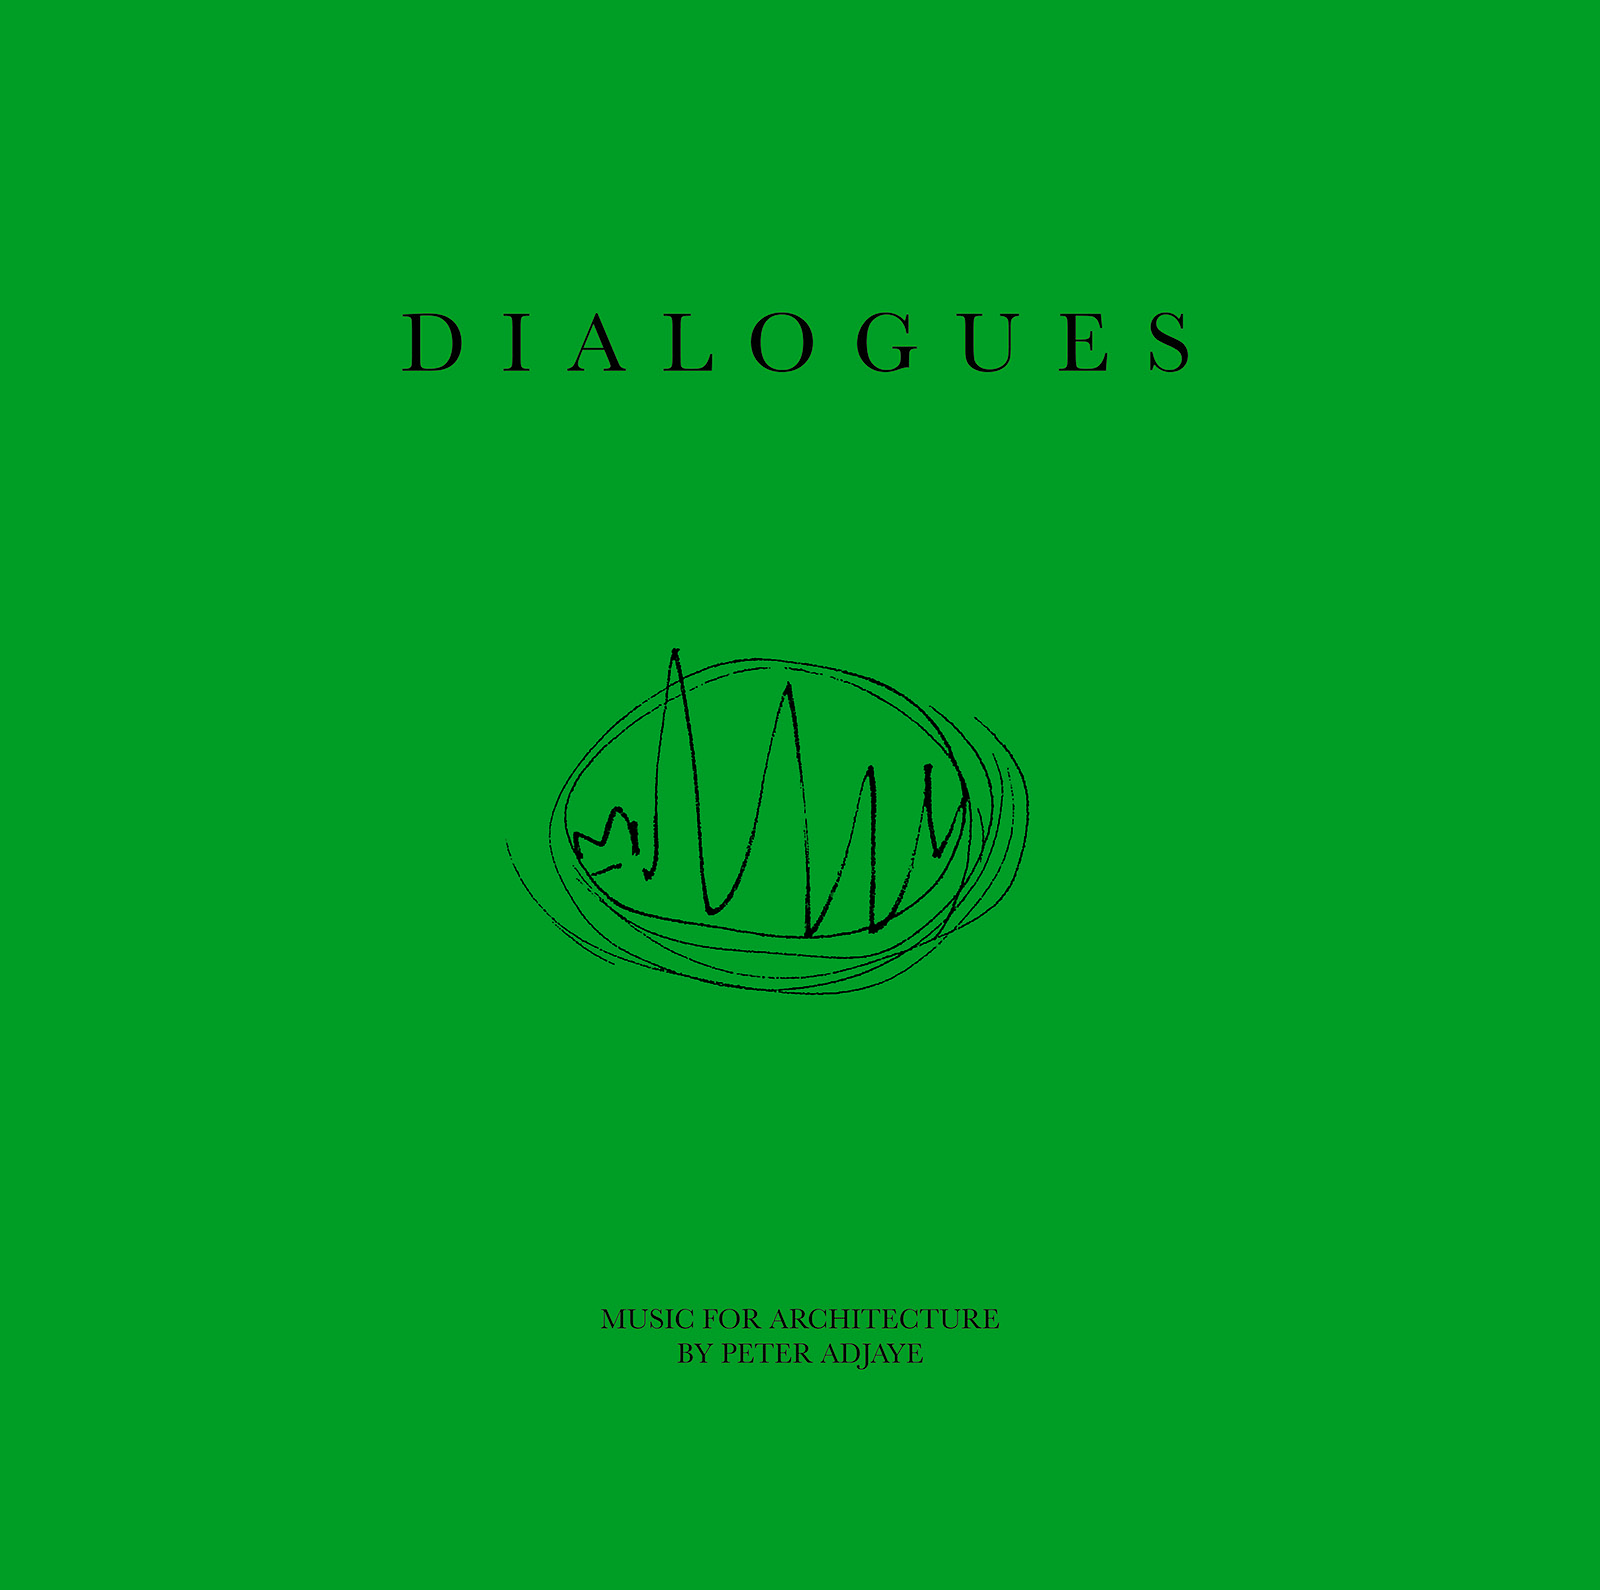 David and Peter Adjaye's 'Dialogues' vinyl